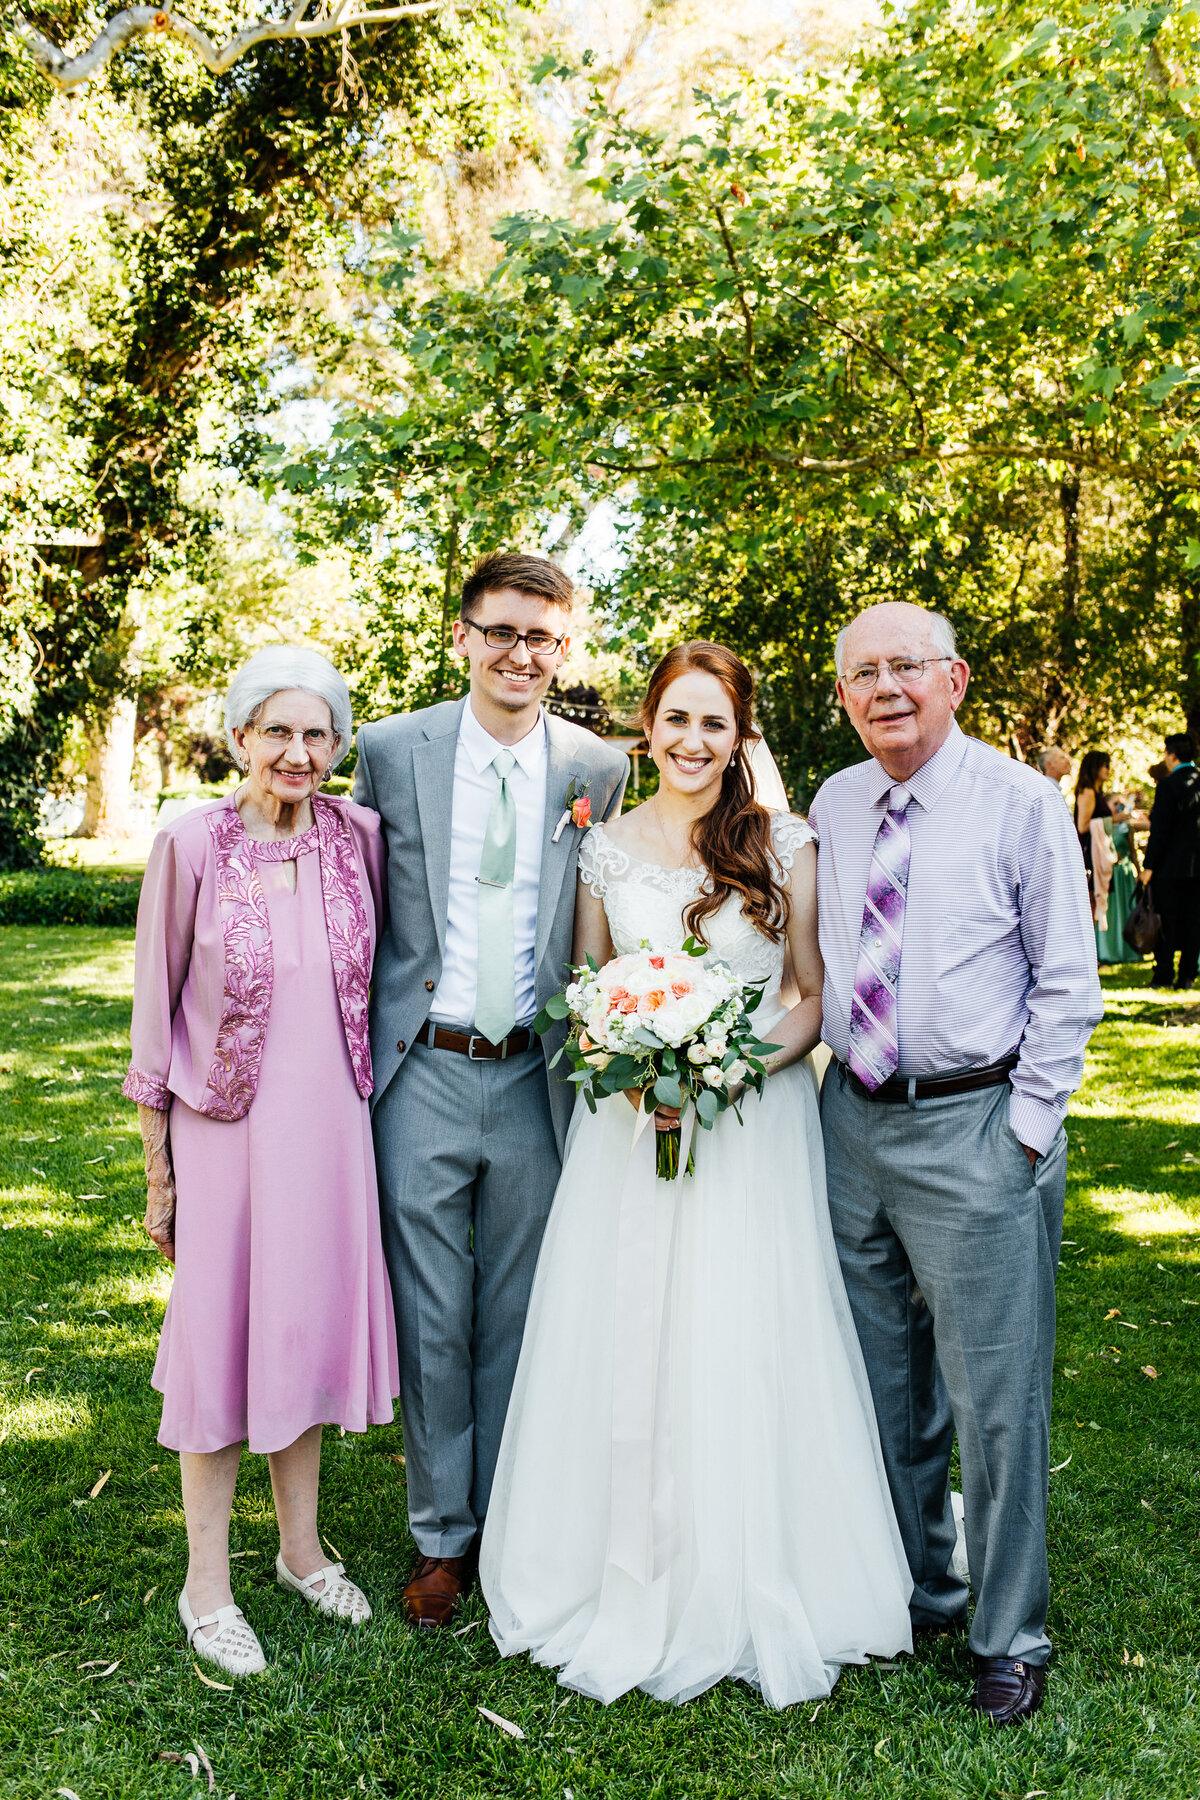 family-photos-socal-wedding-photographer-erin-marton-photography-3